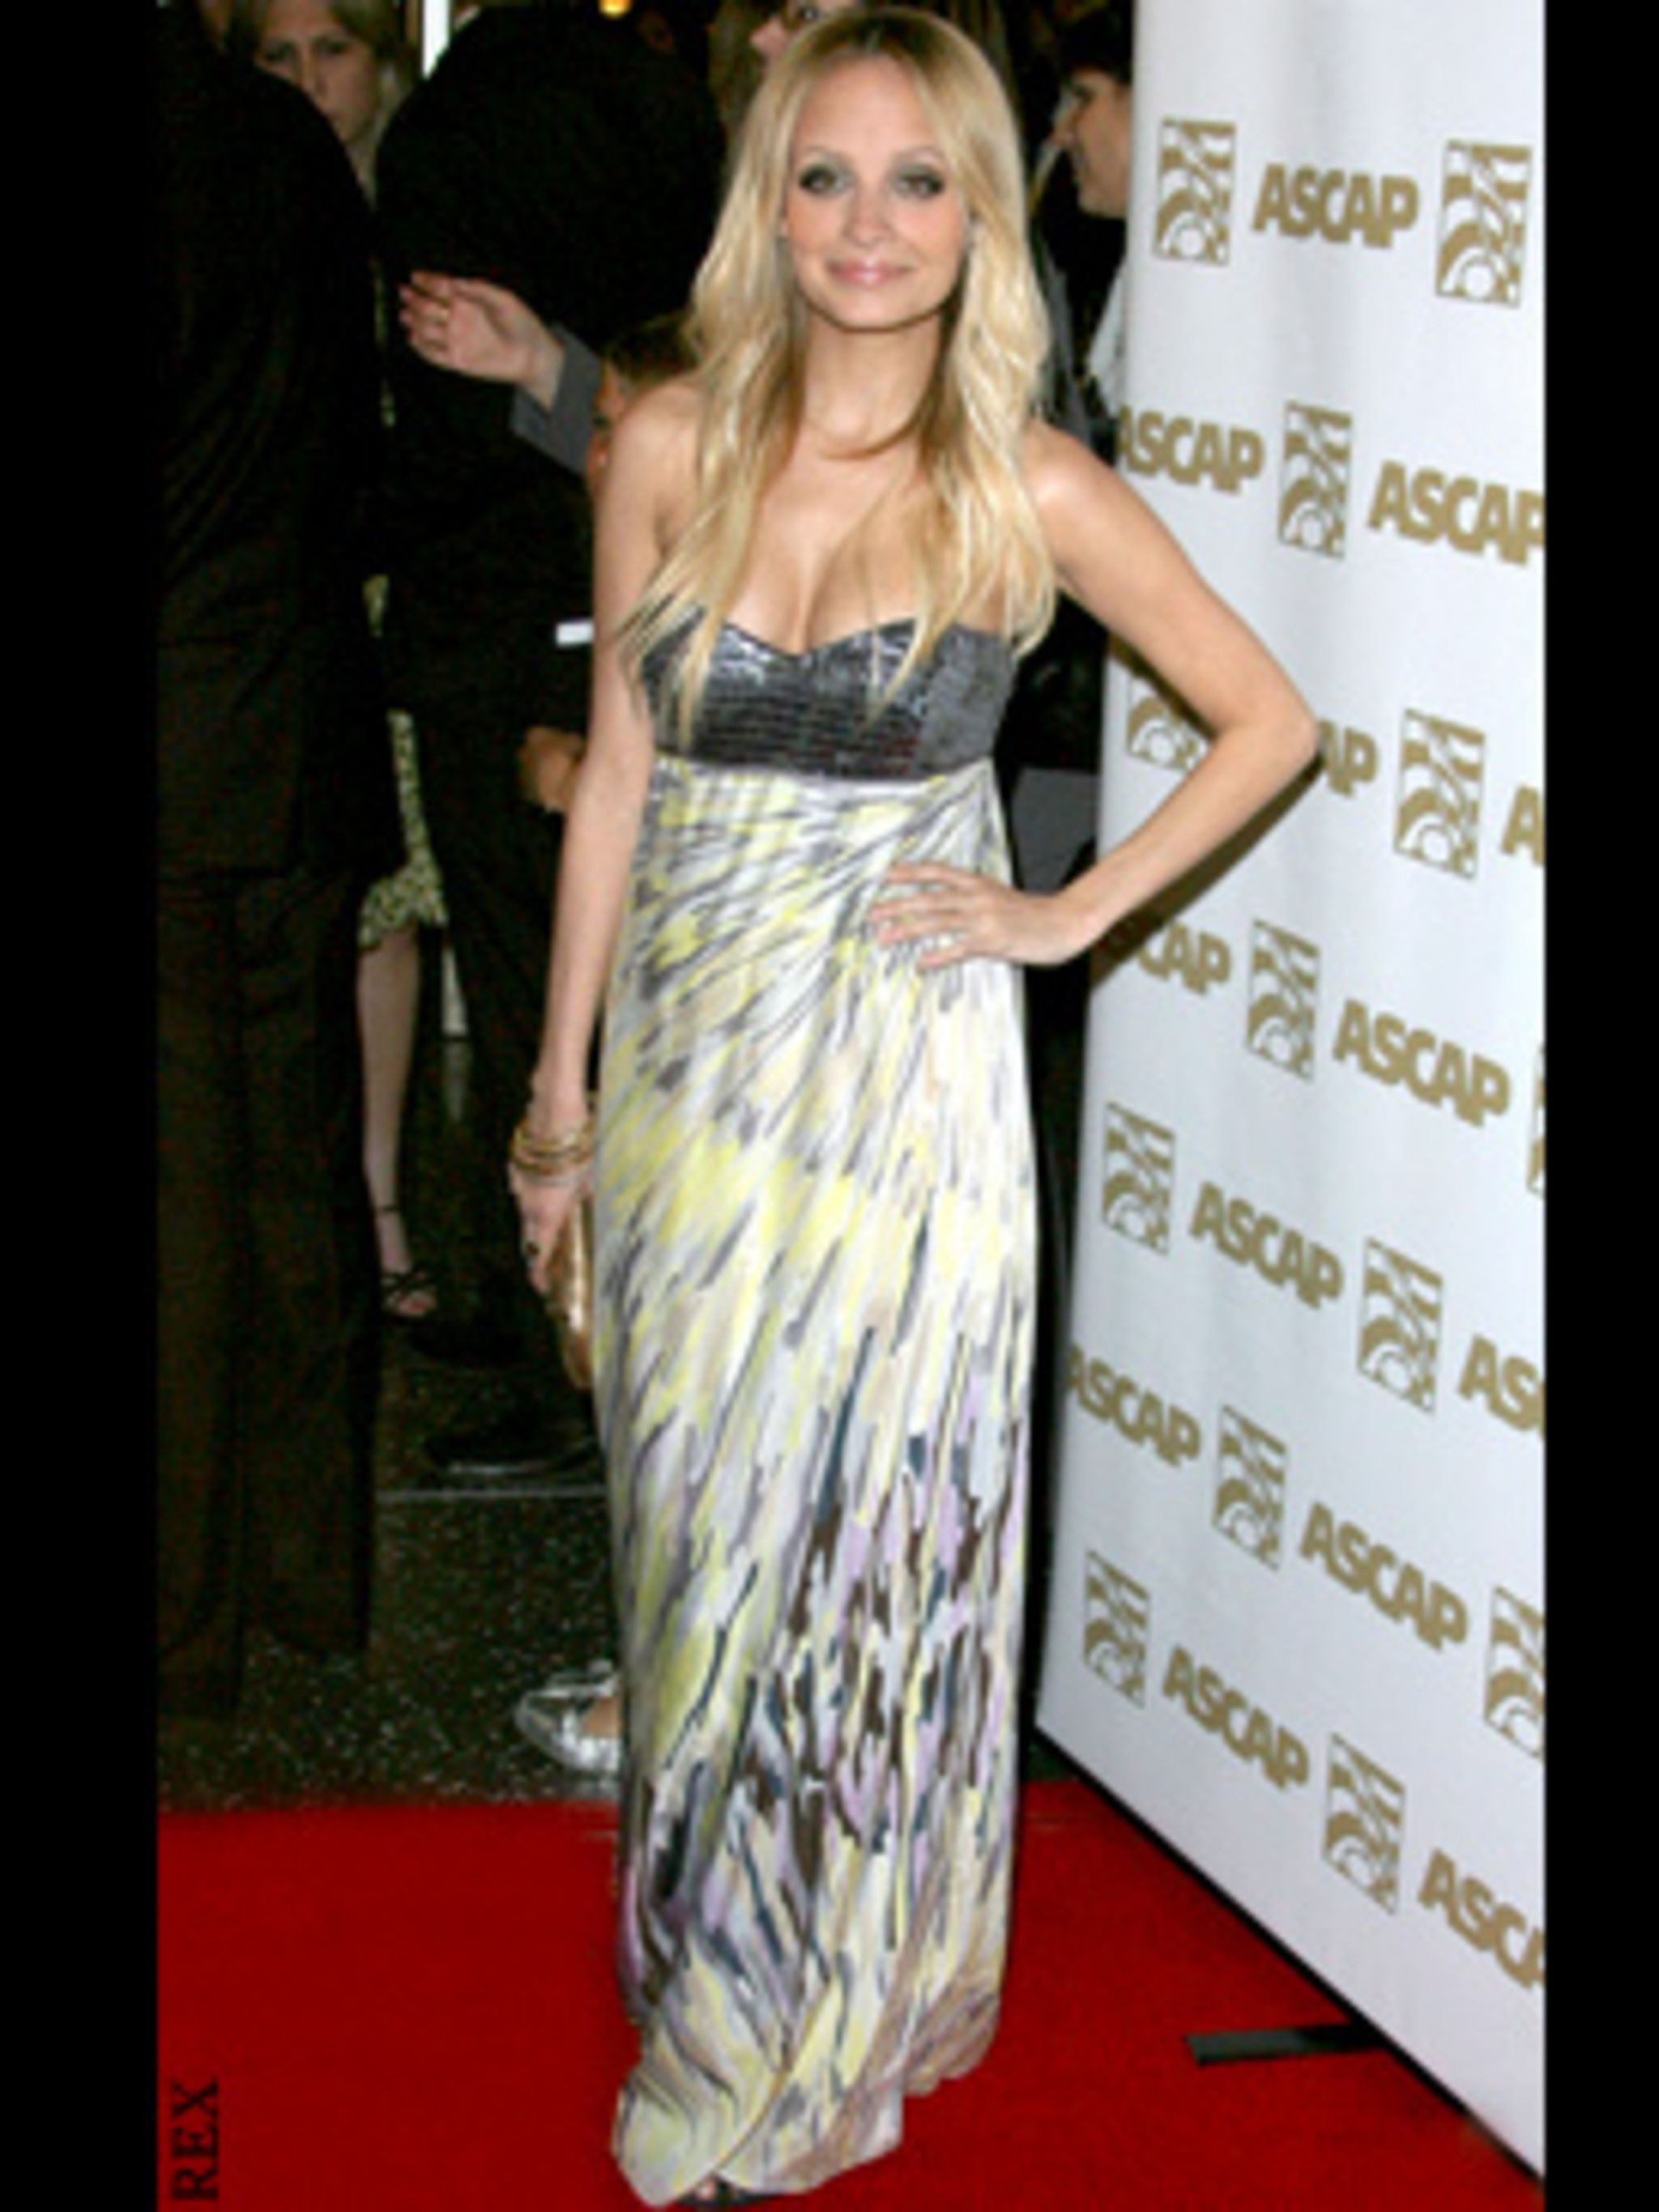 <p>Nicole looks anything but the new mum on the red carpet in Missoni at the ASCAP Music Awards in L.A.</p>